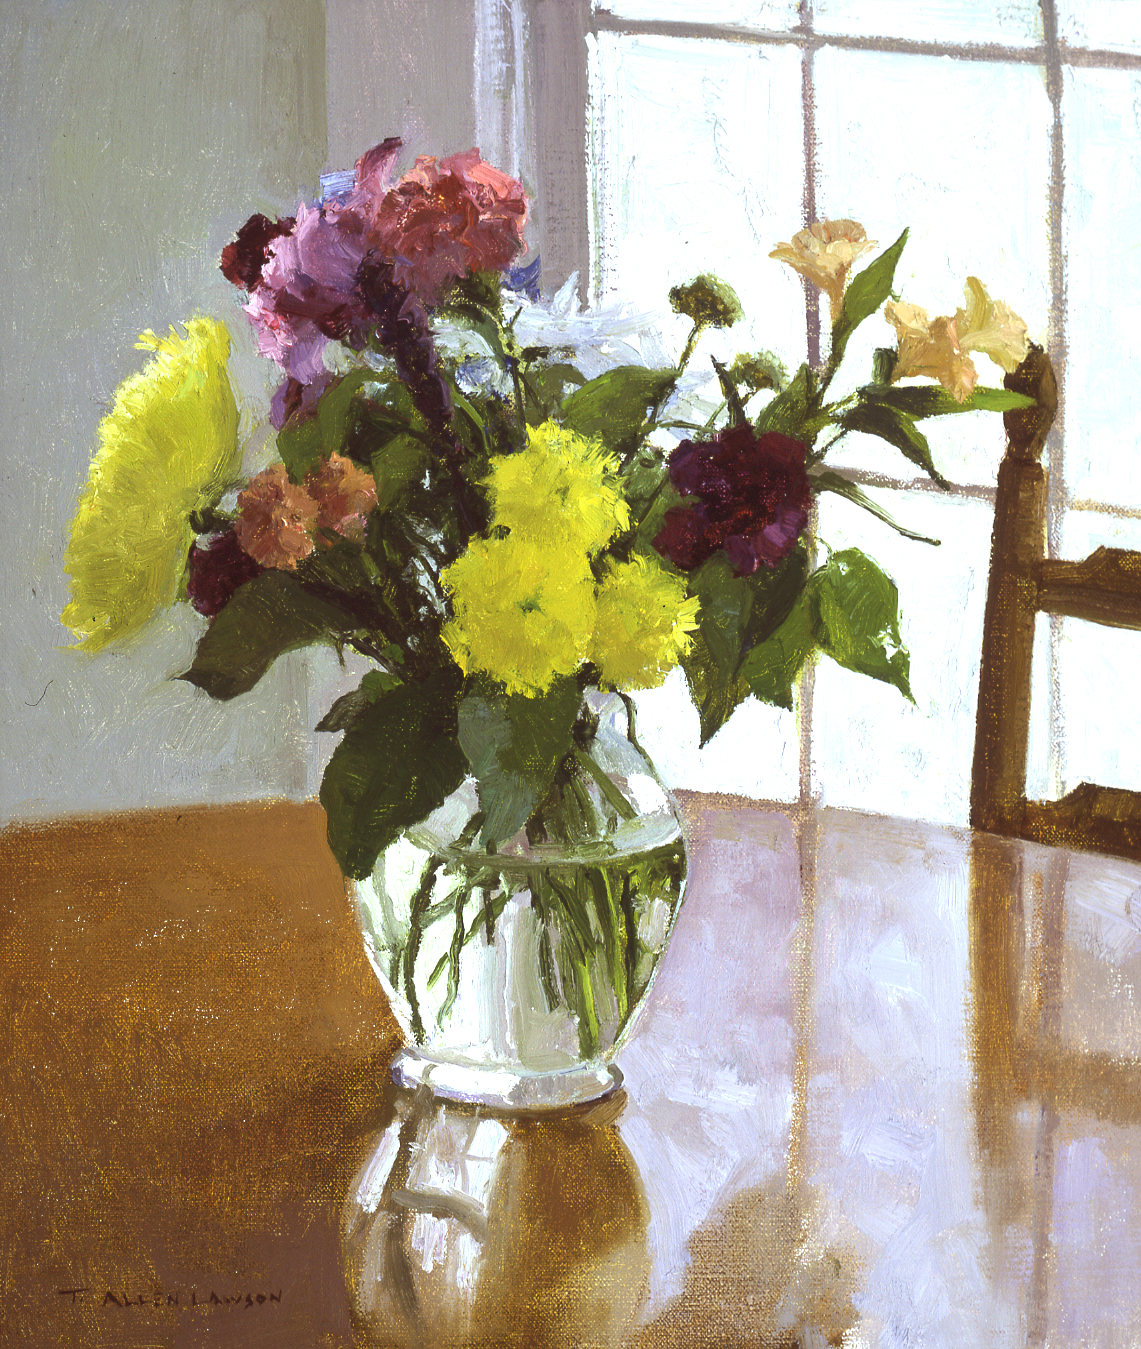 Breakfast Table Bouquet, oil on linen, 16 x 14in. Collection of John and Nancy O'Shea